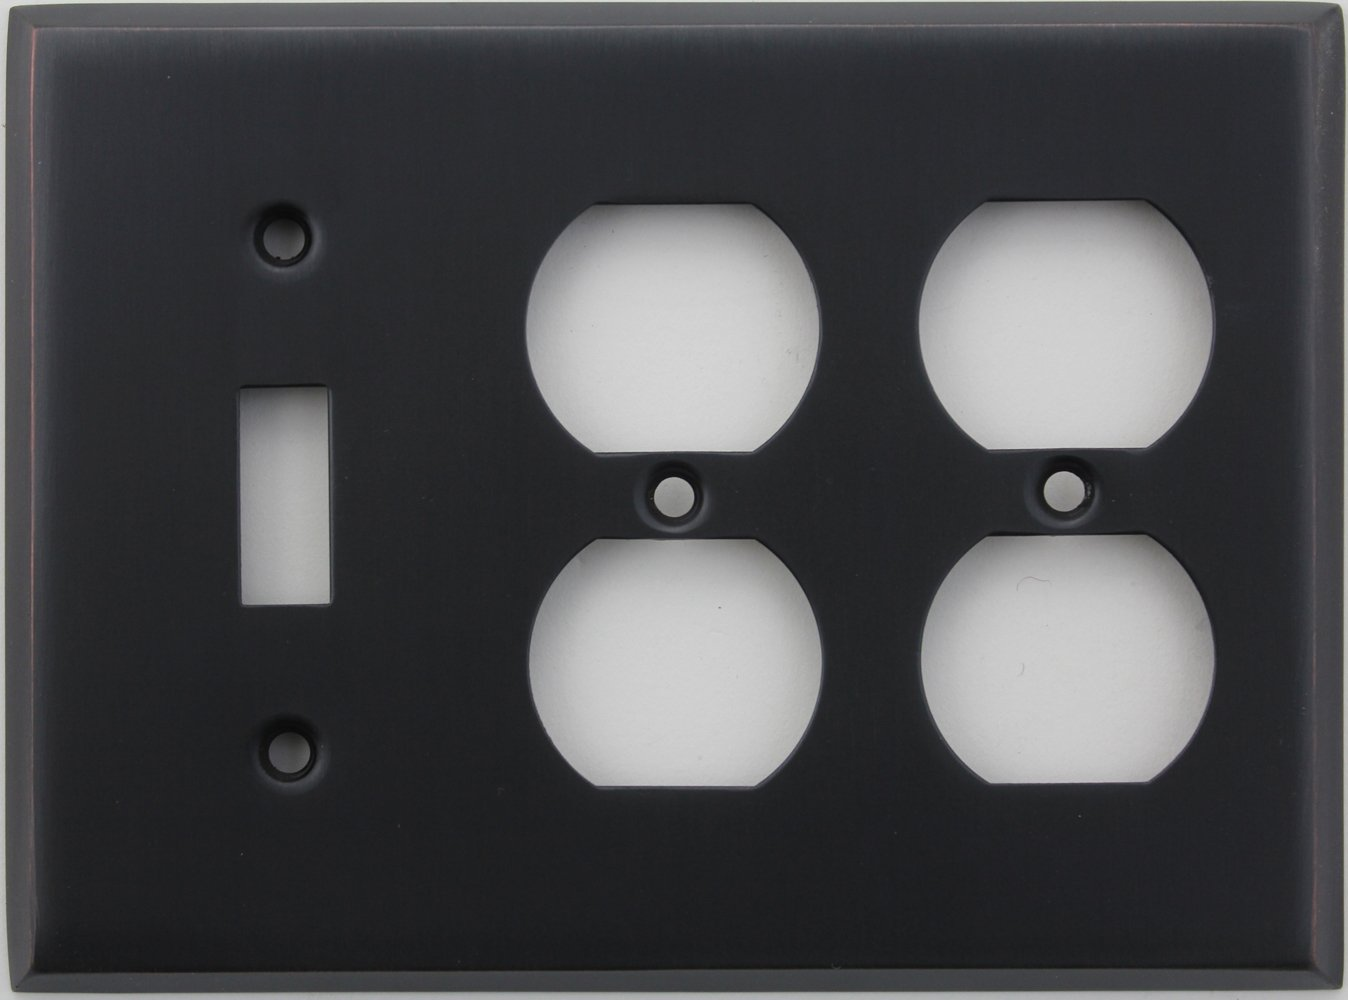 Classic Accents Stamped Steel Oil Rubbed Bronze Three Gang Wall Plate - One Toggle Light Switch Opening Two Duplex Outlet Openings